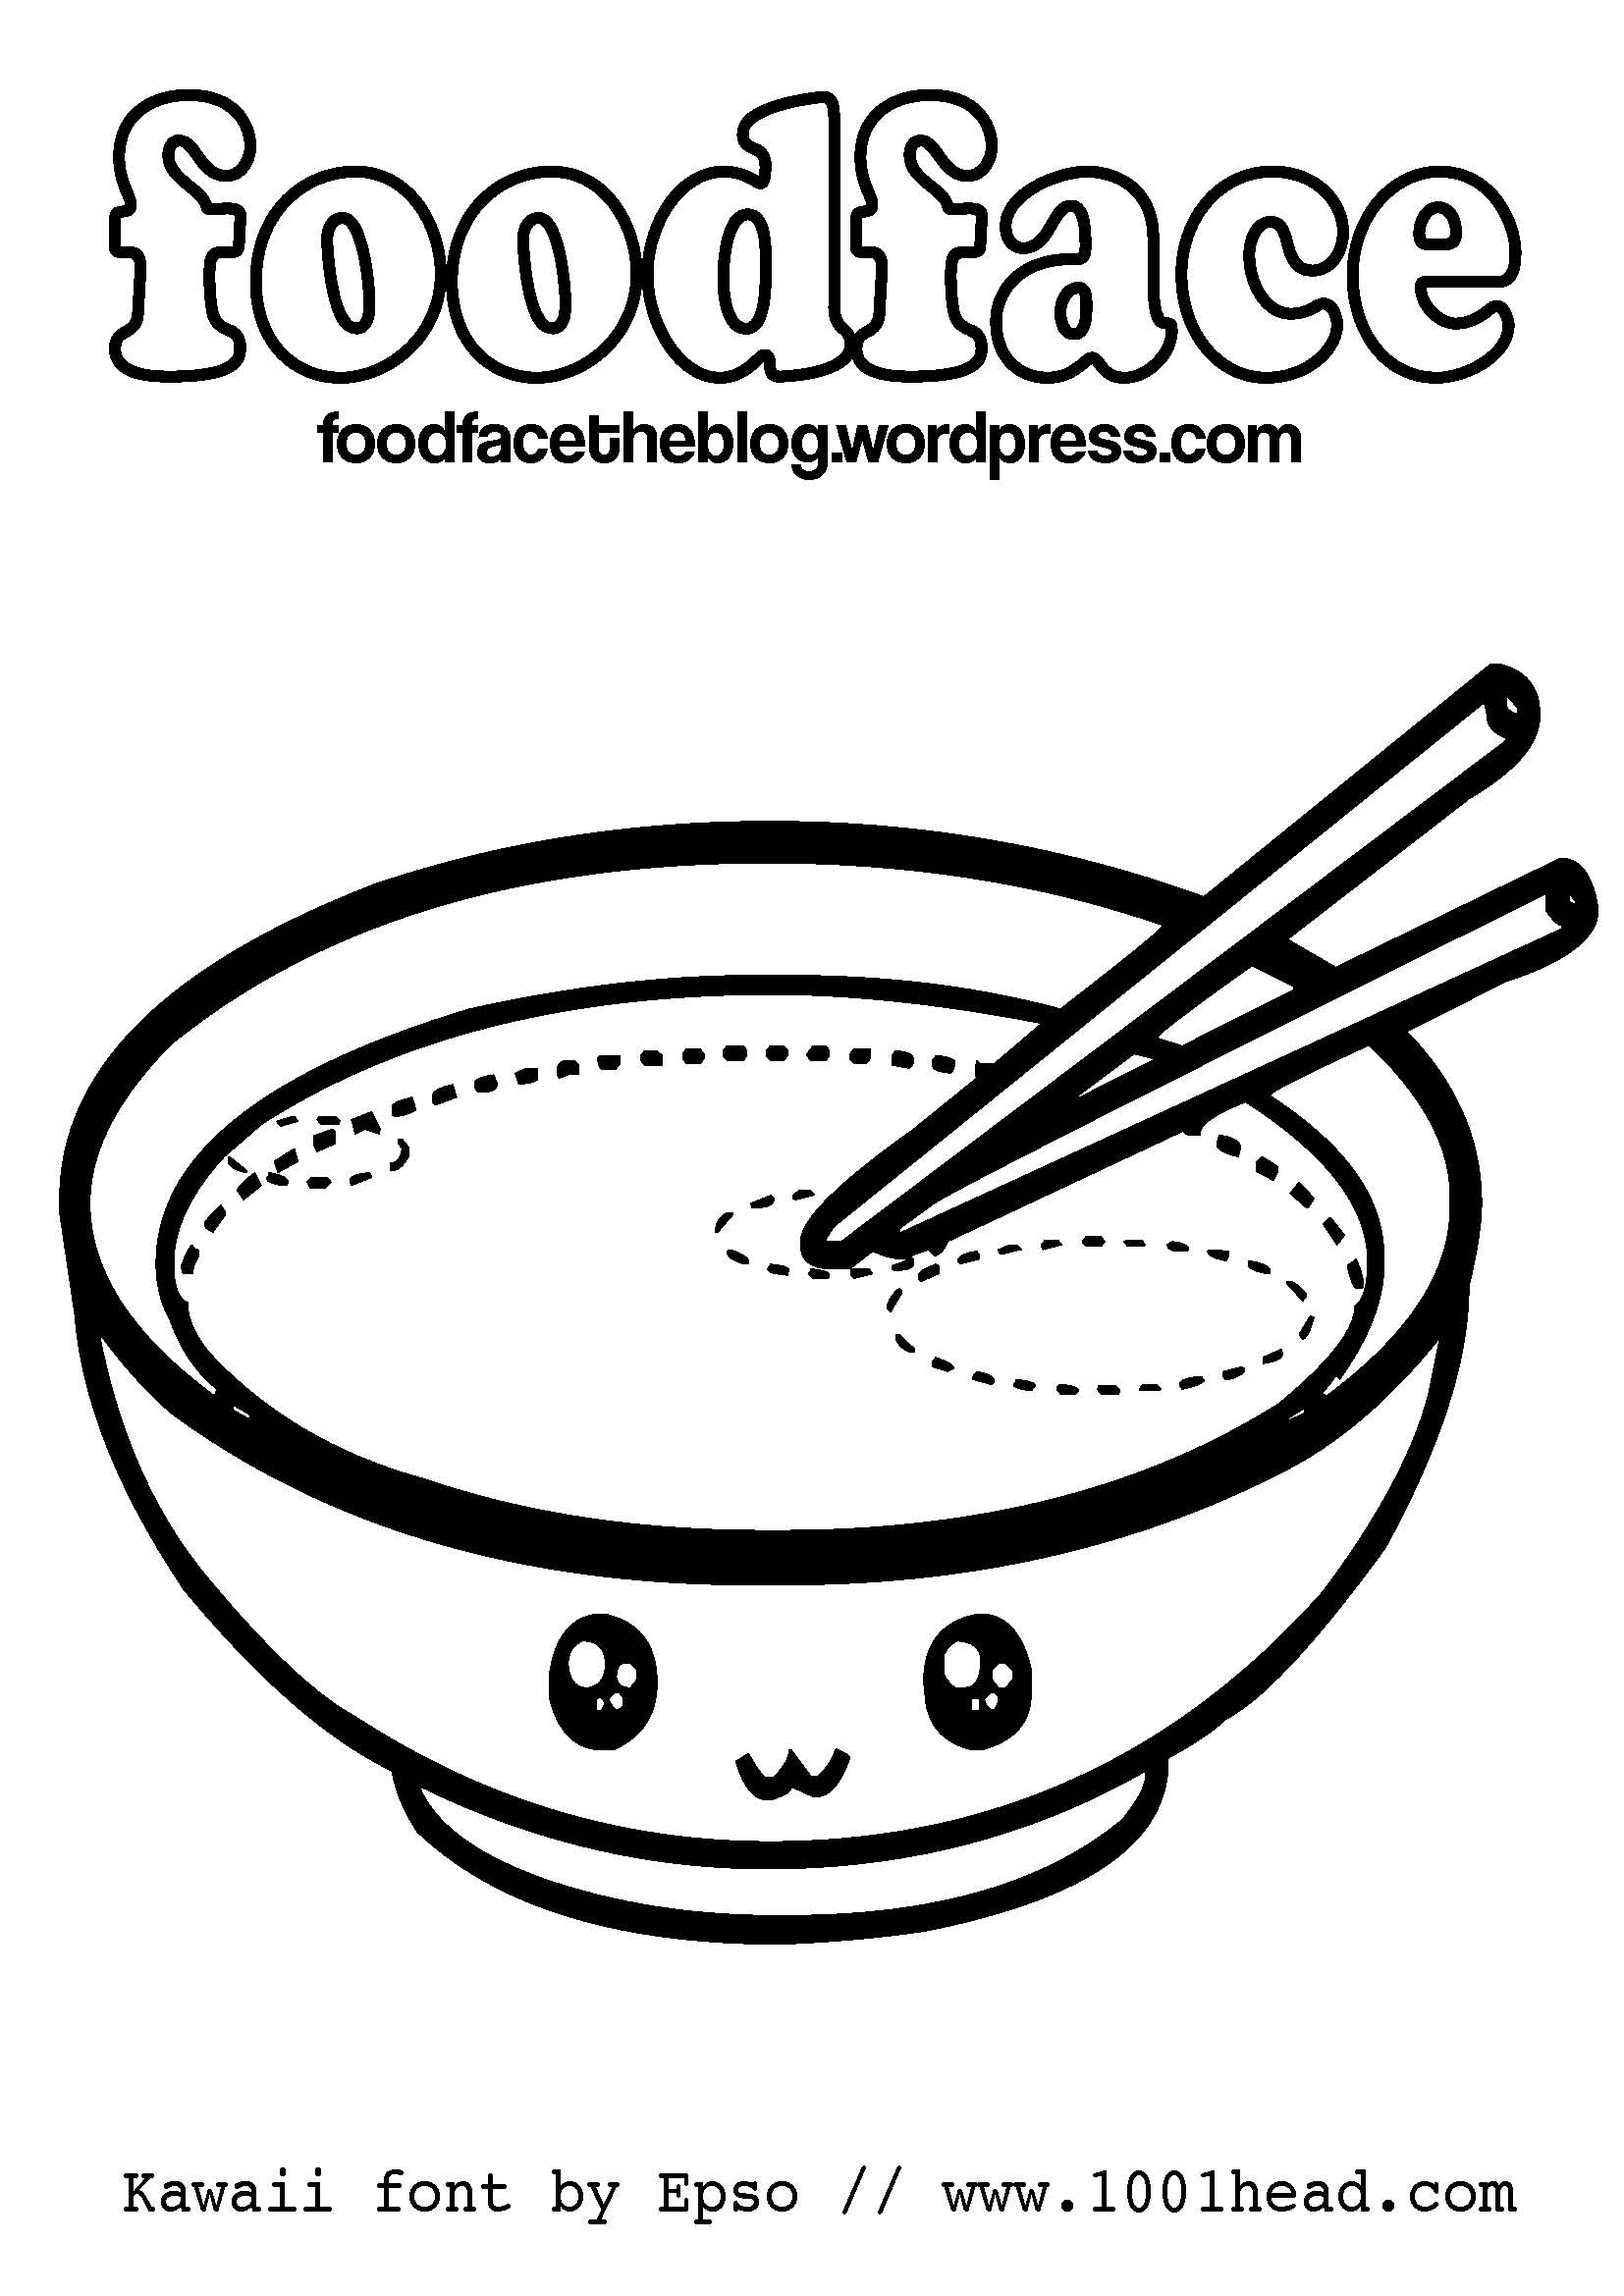 coloring pages of food canned food coloring pages at getdrawings free download of food pages coloring